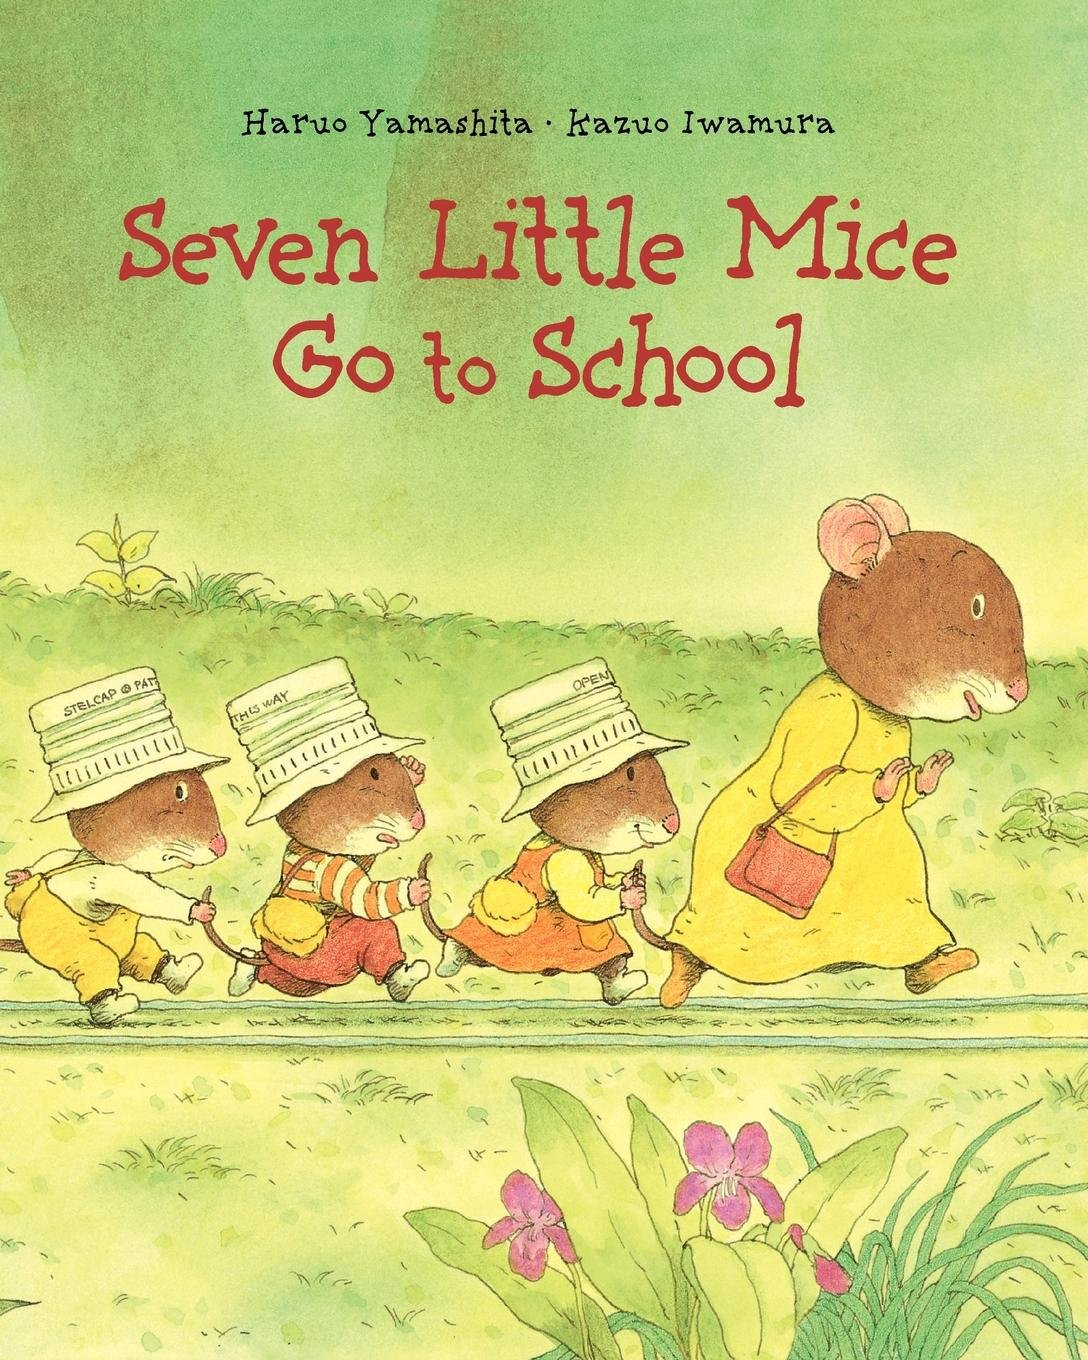 Seven Little Mice Go To School: Kazuo Iwamura: 9780735840126: Amazon.com:  Books